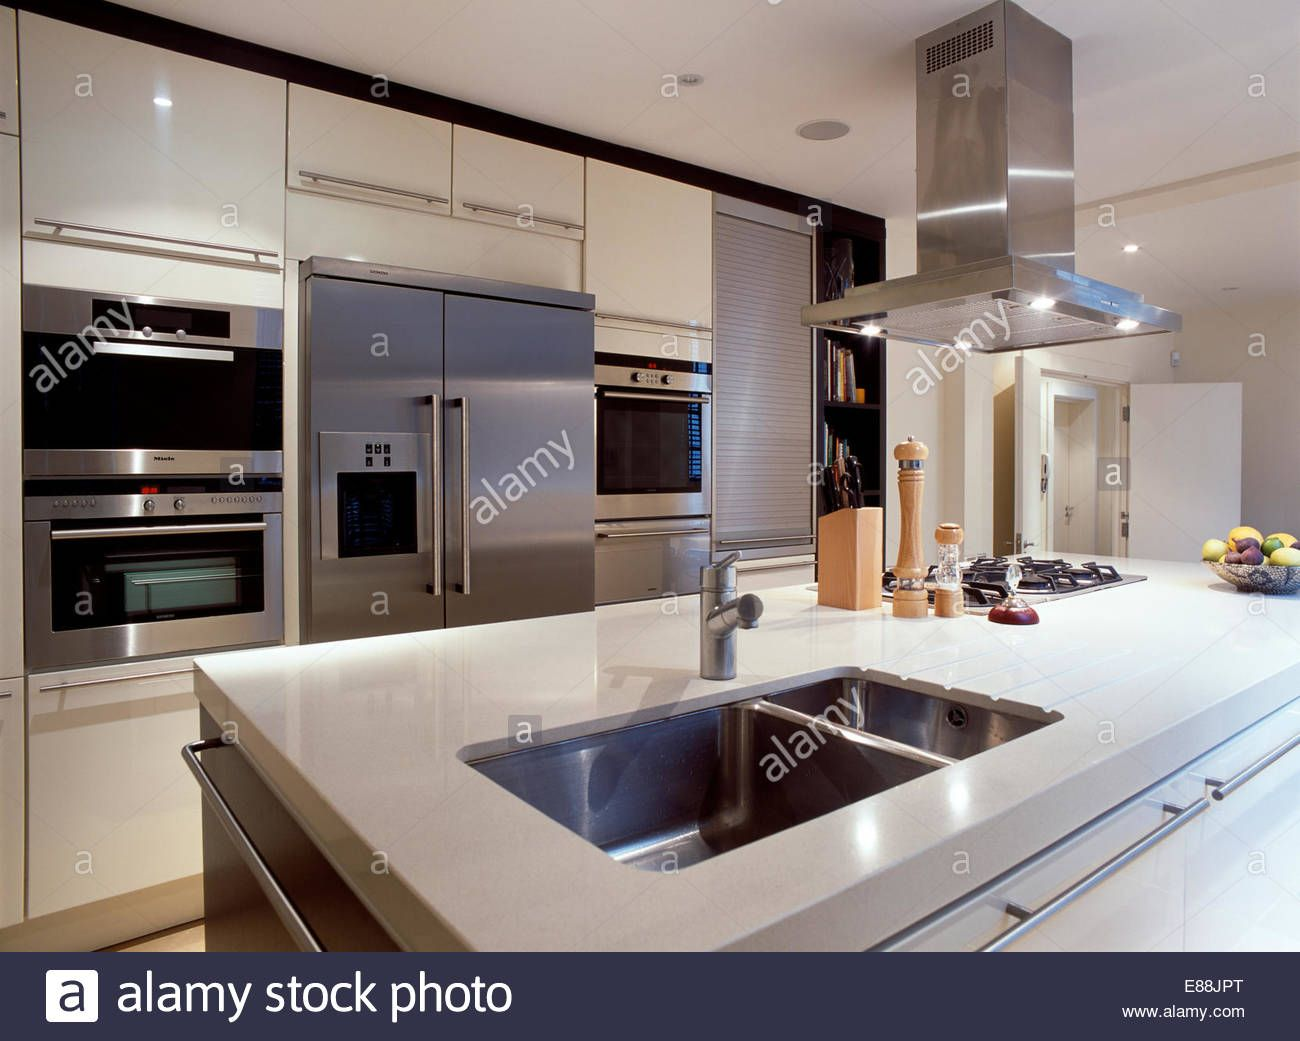 Image Result For Kitchen Island With Hob And Sink Kitchen